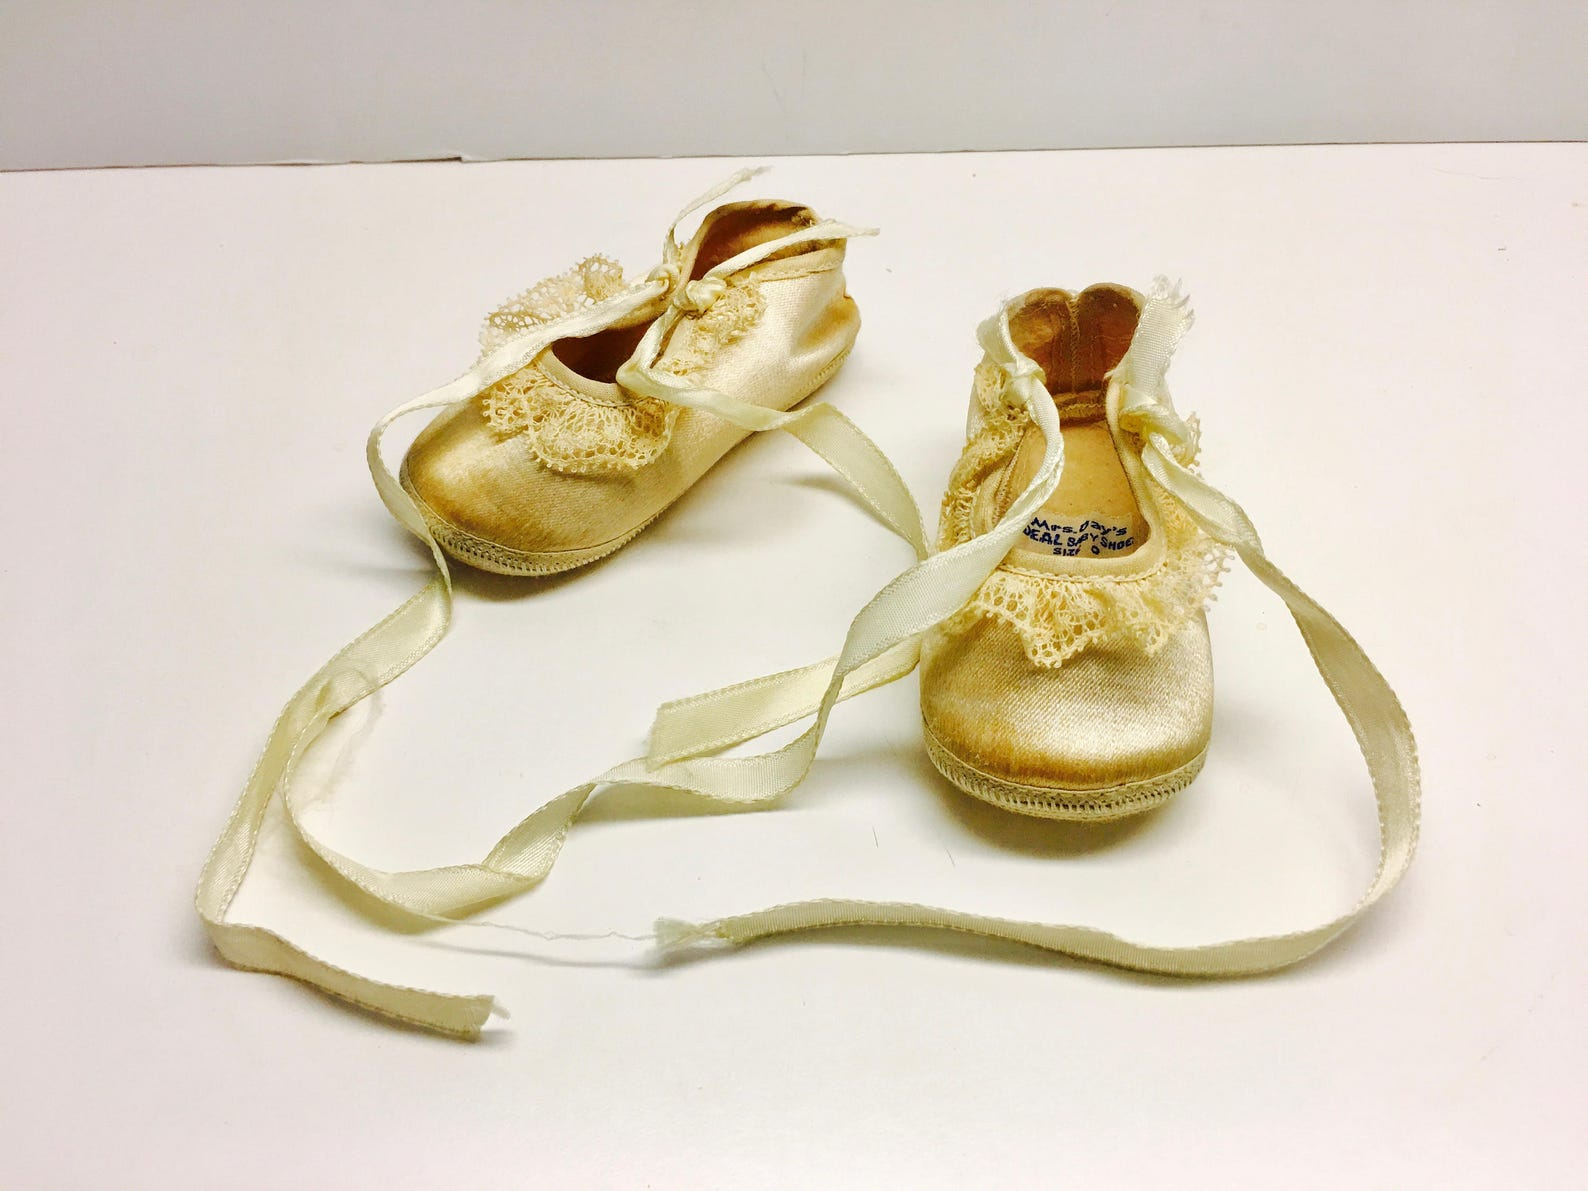 vintage satin baby or doll ballet slippers - mrs day's ideal baby shoe, decoration or gift, size 0